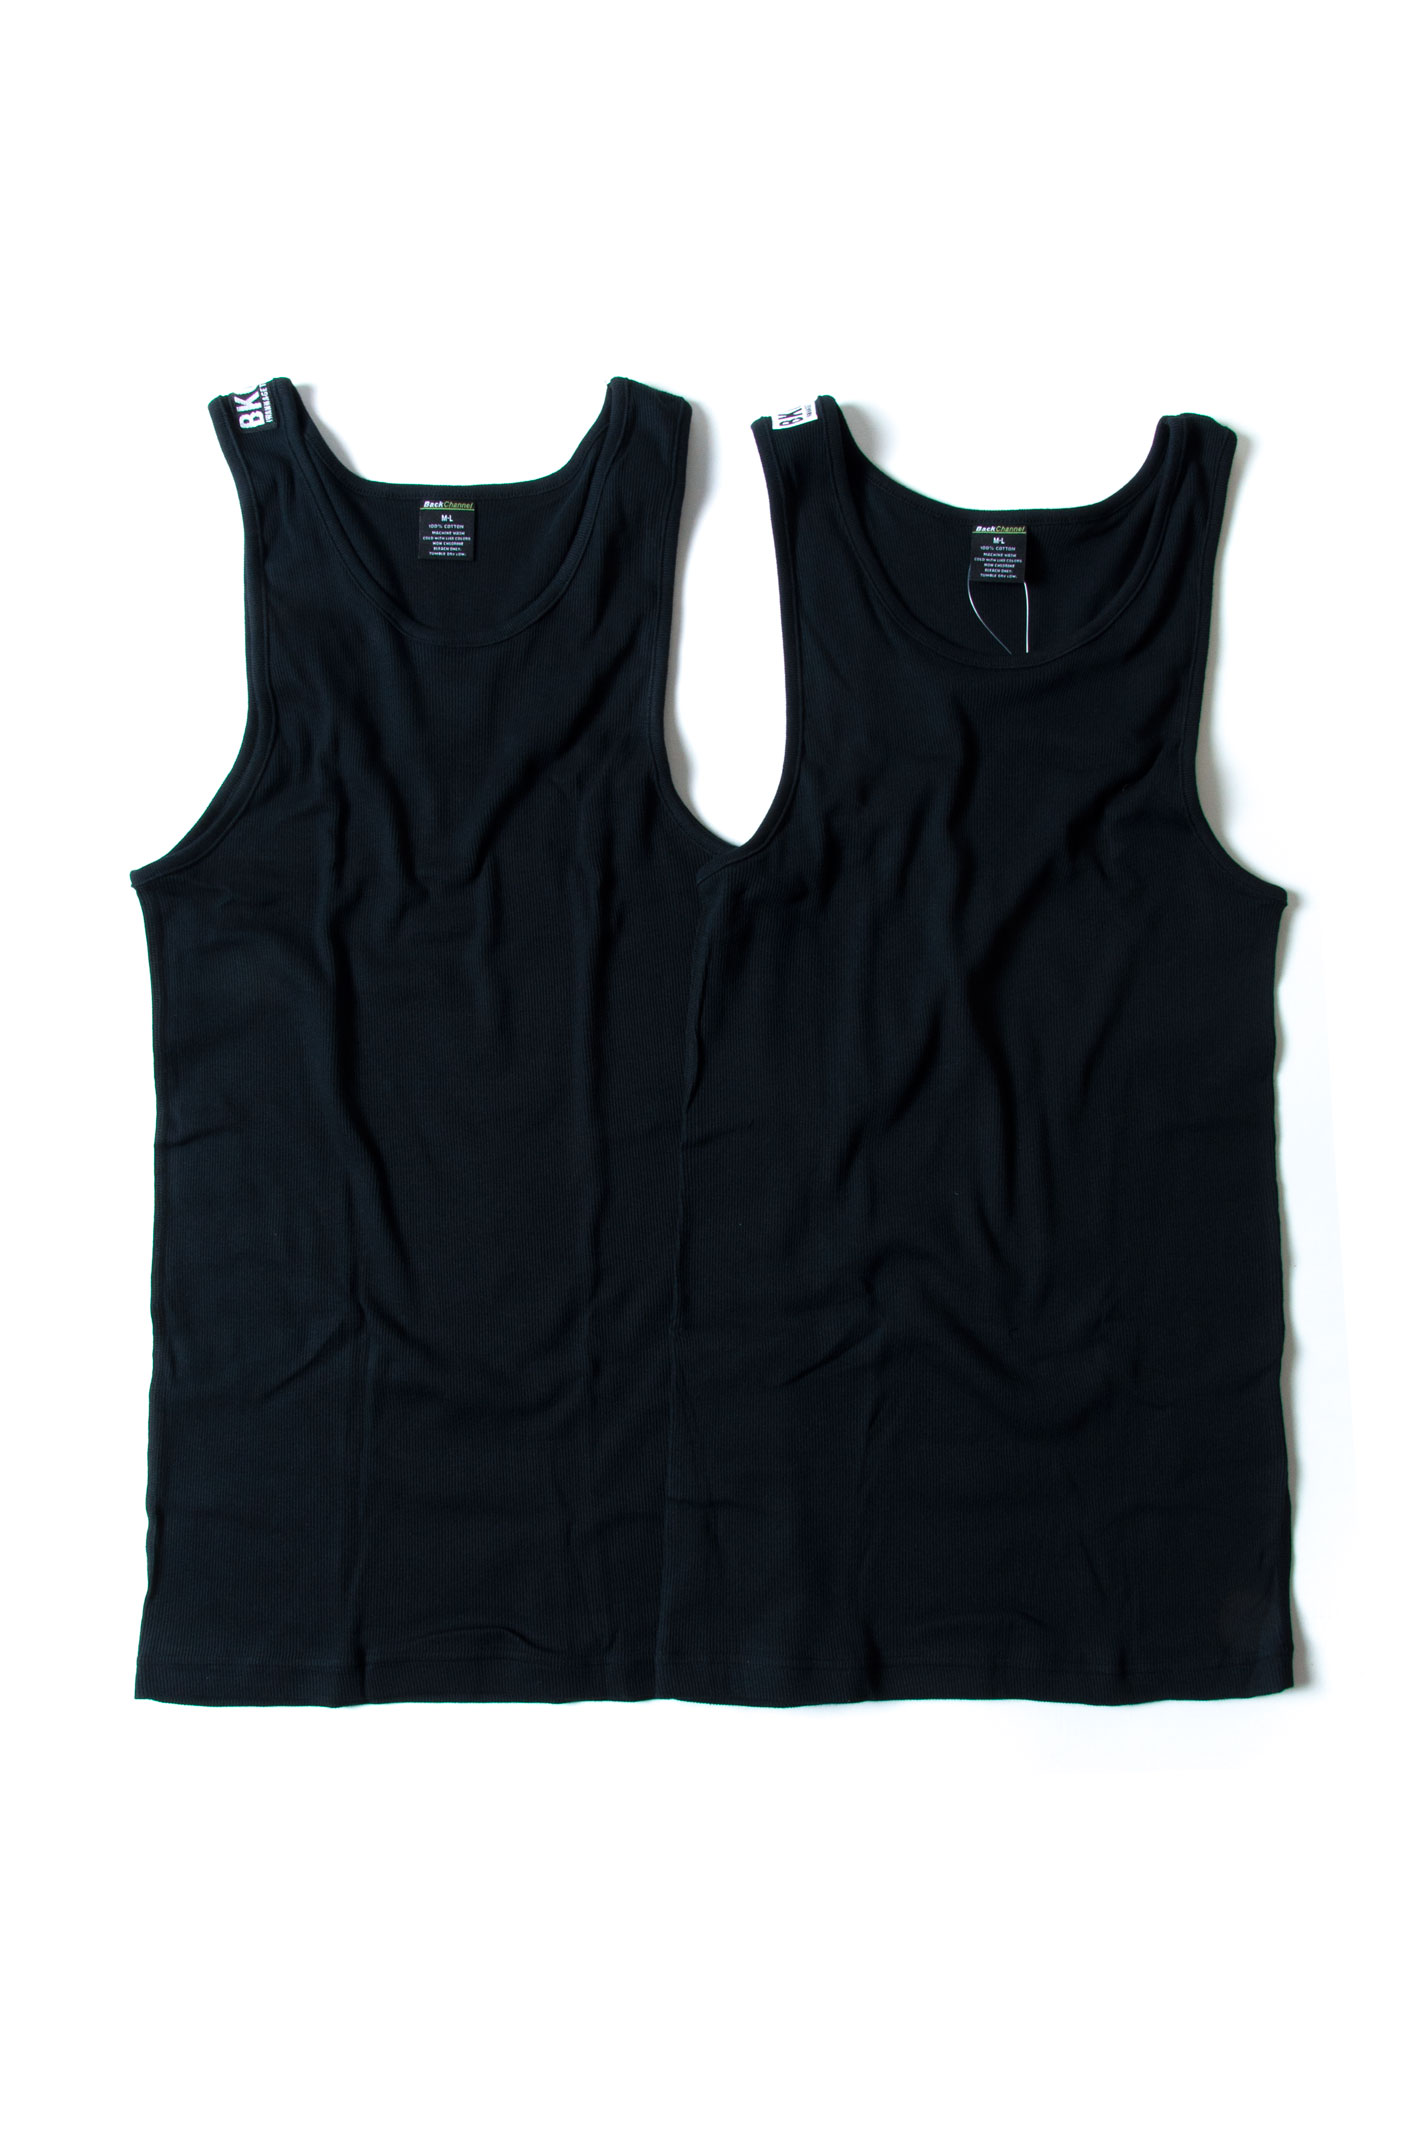 画像2: 【Back Channel】 2P TANK TOP